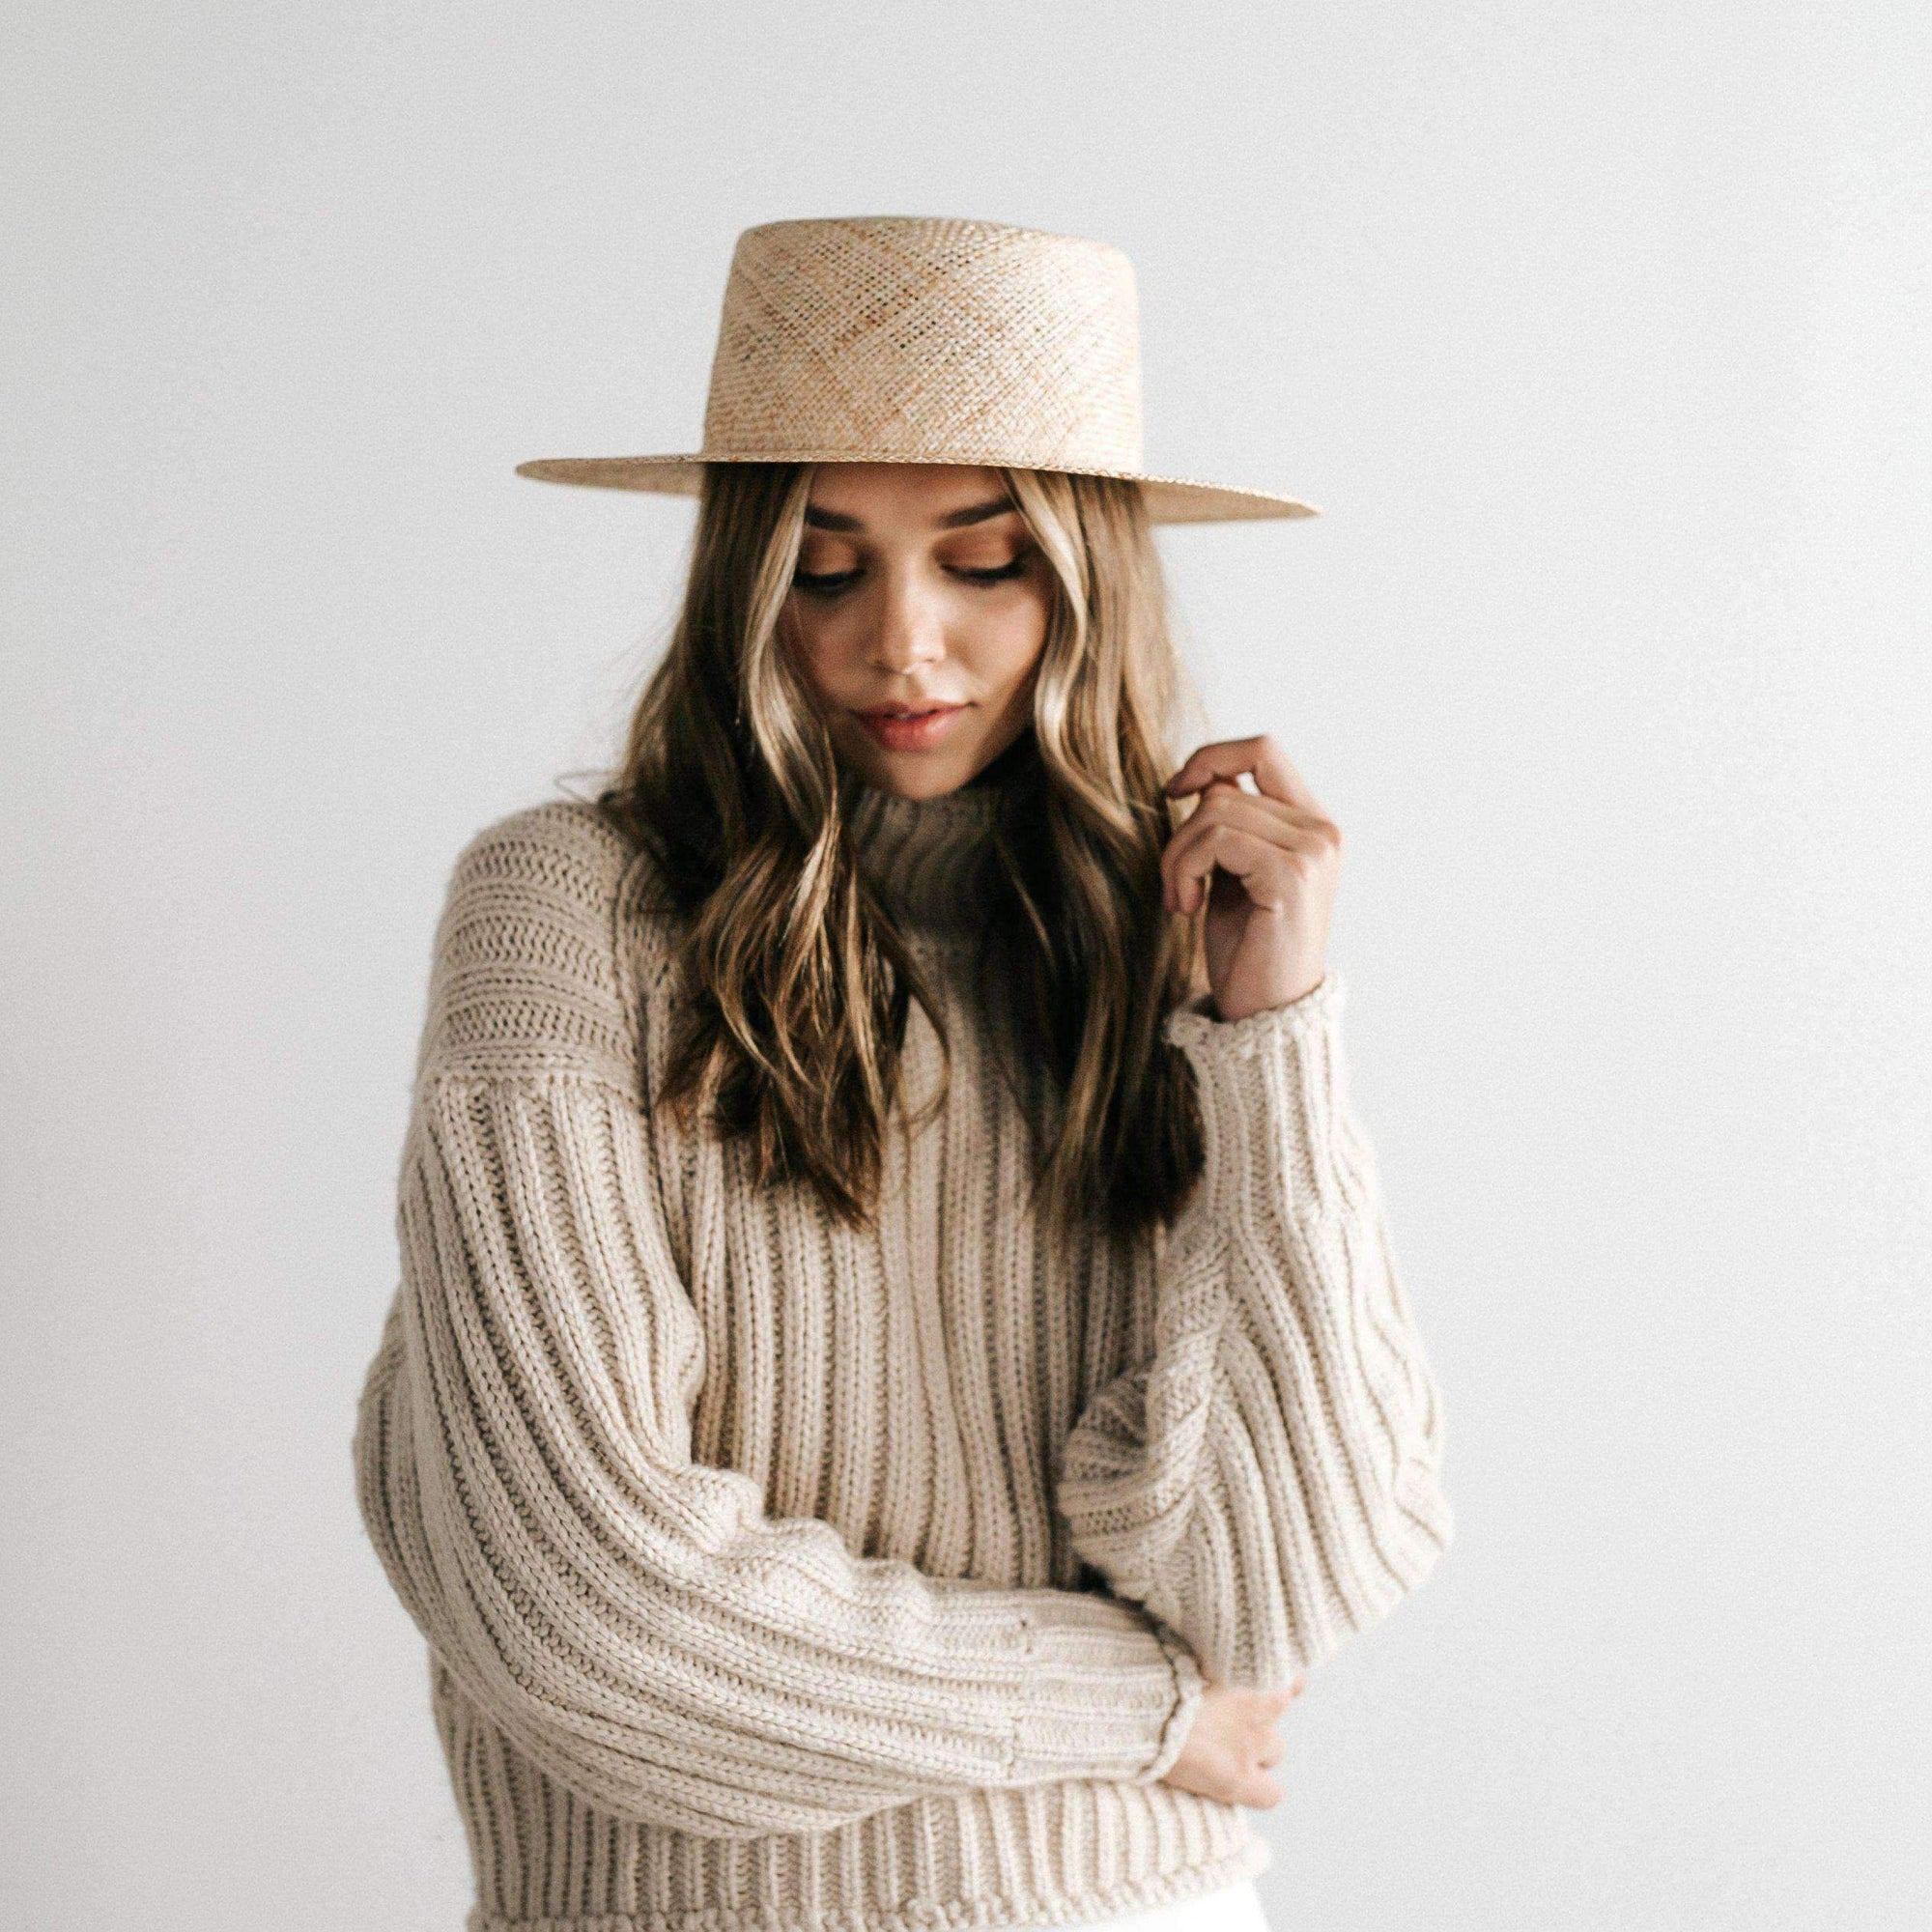 GIGI PIP Hats for Women- Brae Straw Boater-Straw Hats